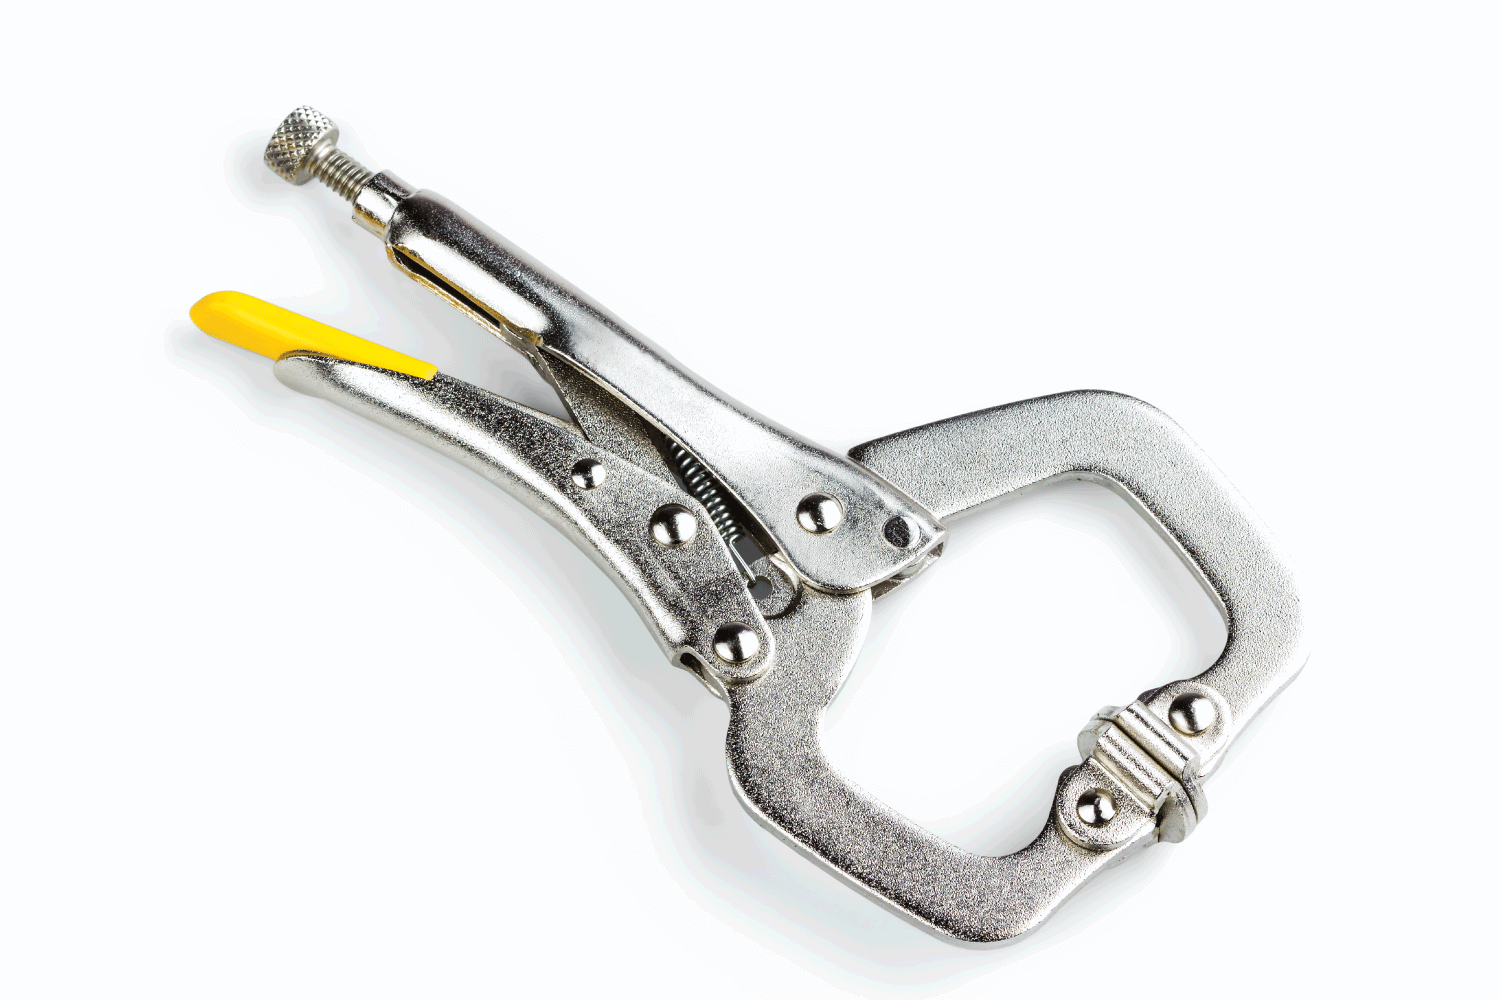 Locking C-clamp with swivel pads isolated on white background